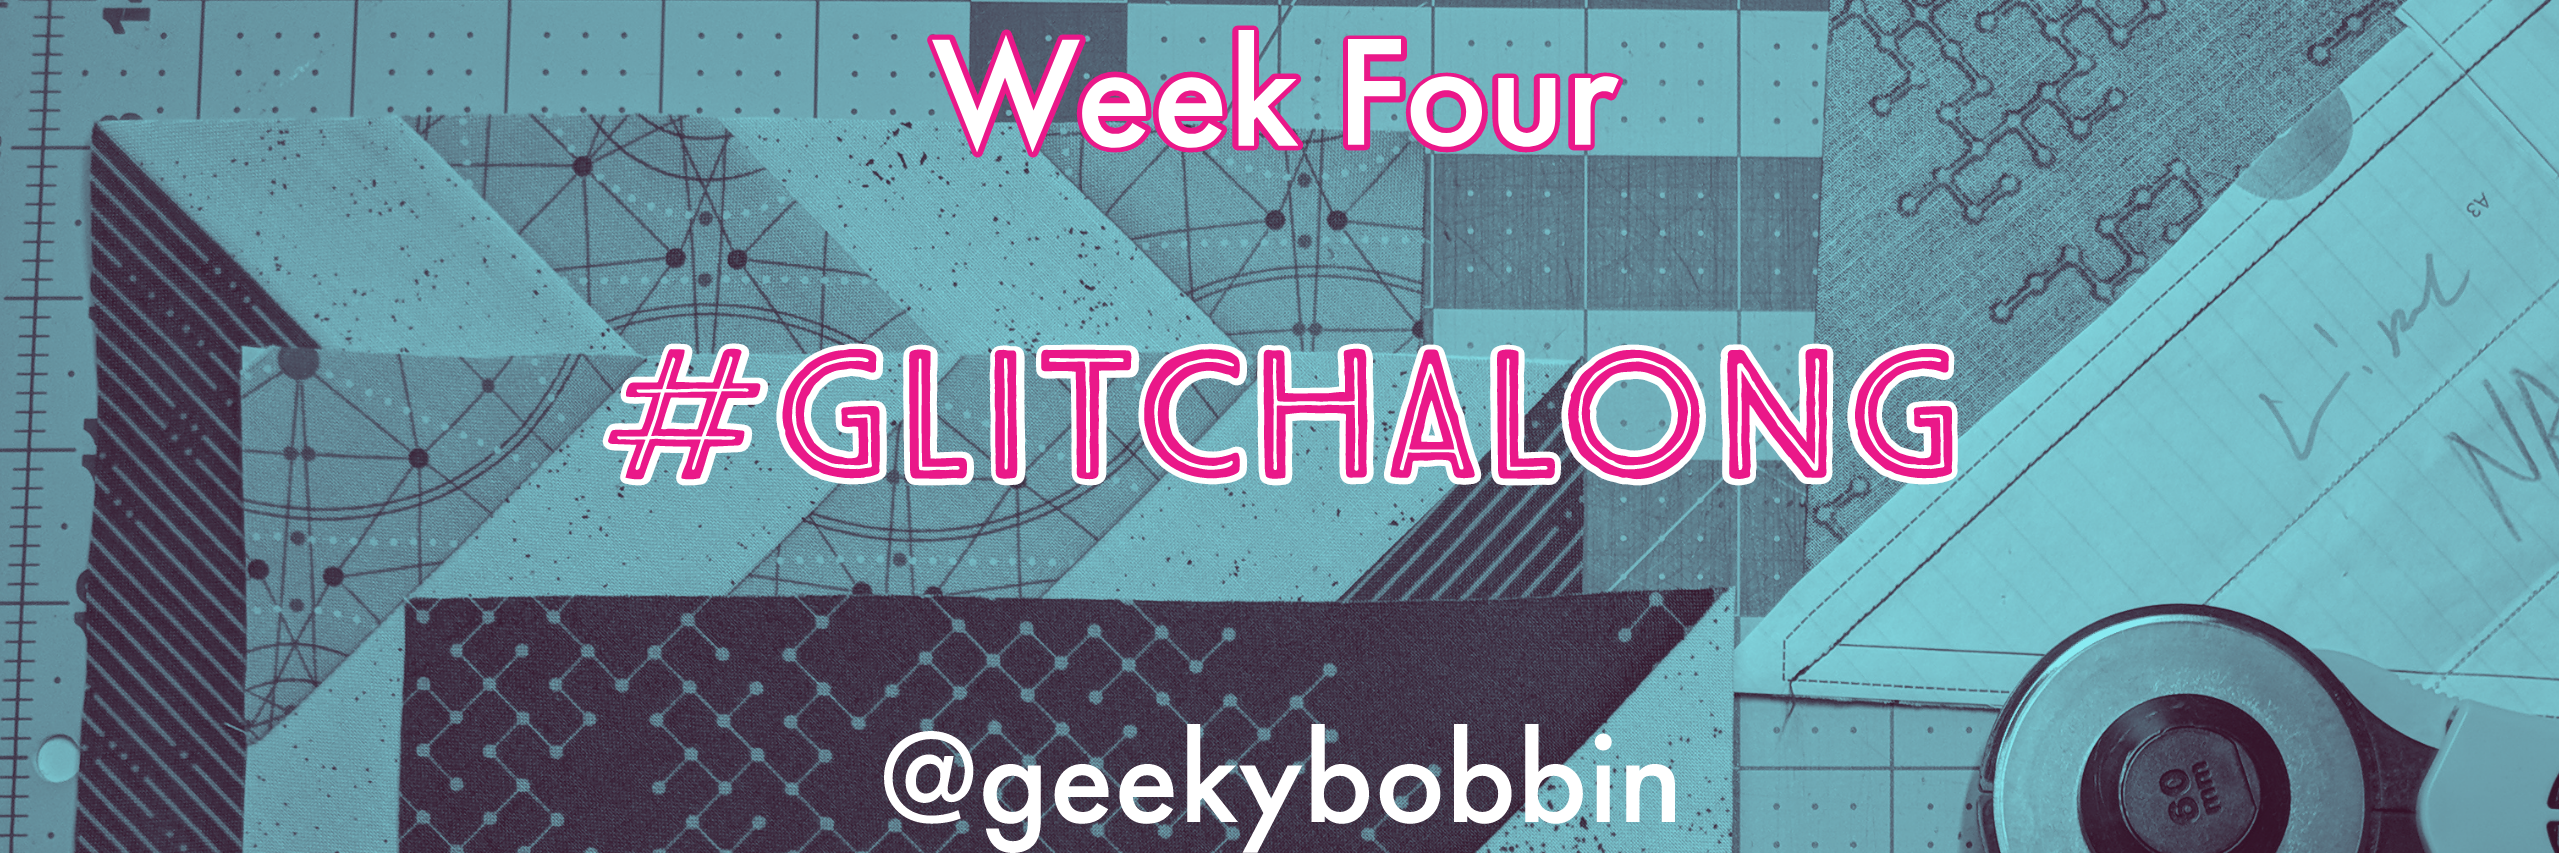 Glitch Along Week Four